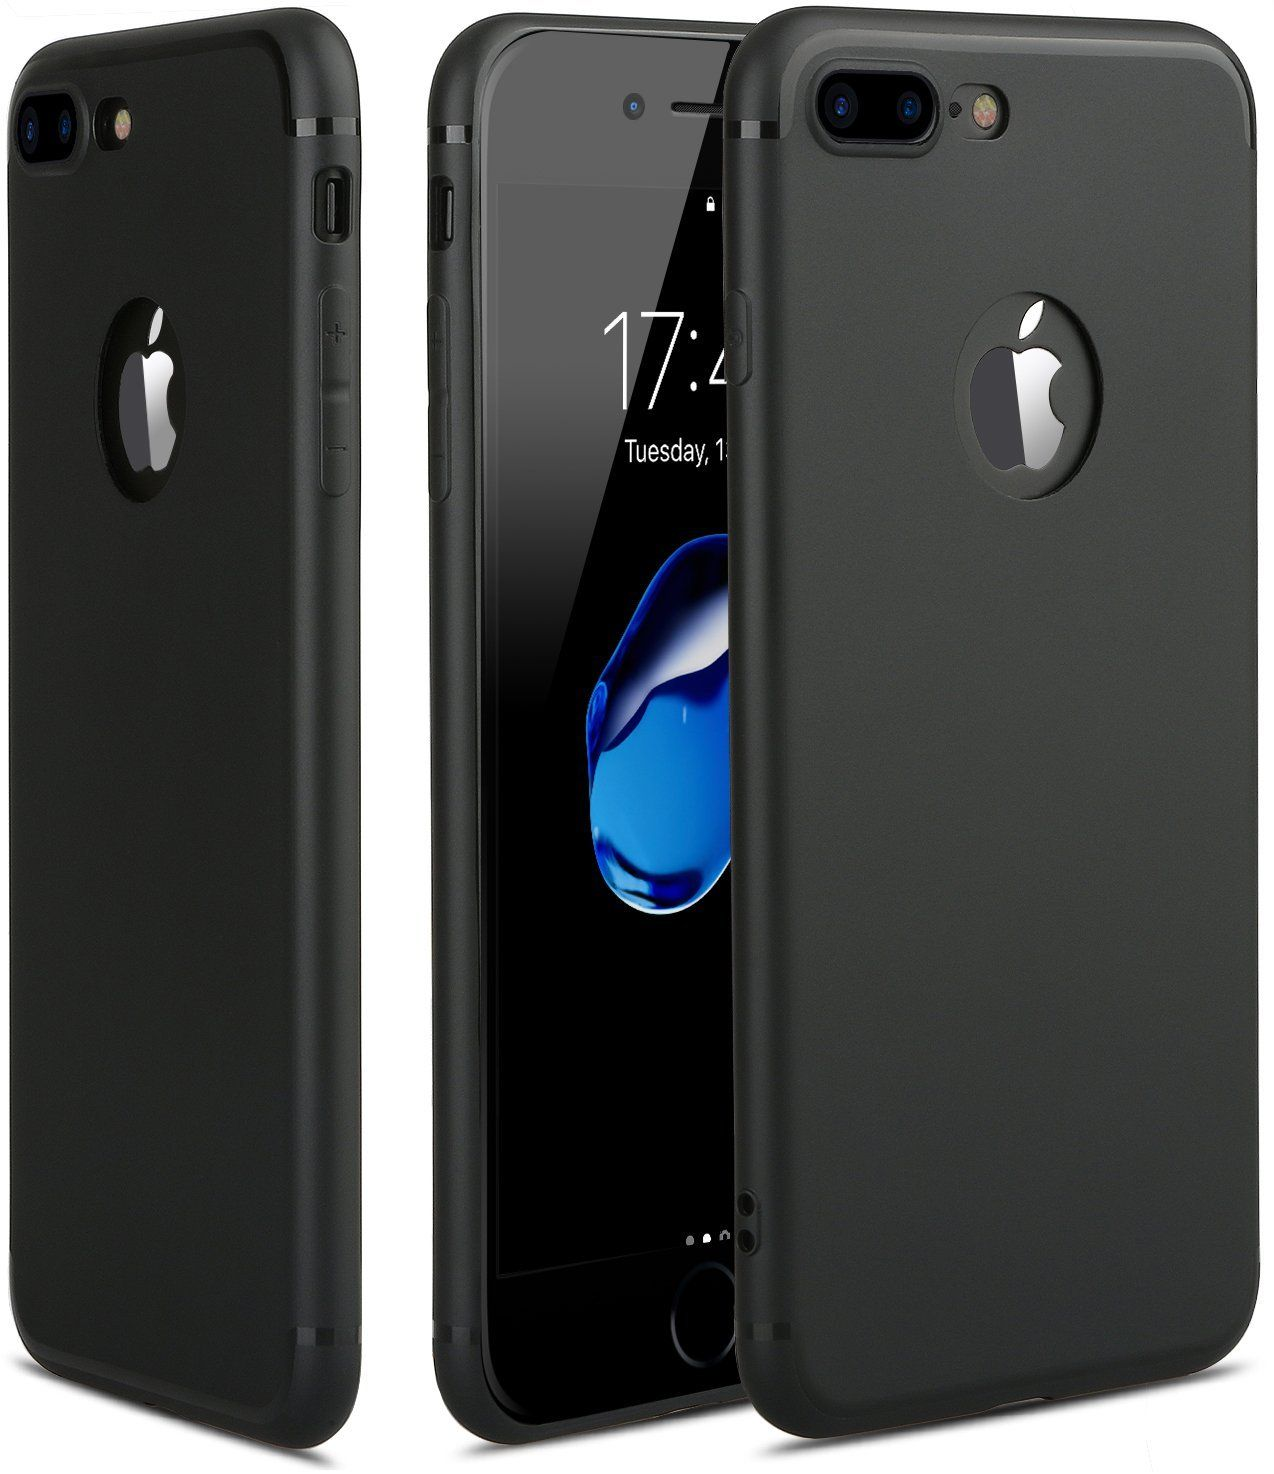 iPhone 7 Plus Case, HZ BIGTREE Ultra-Thin TPU Soft Flexible Case for Apple iPhone 7 Plus 5.5